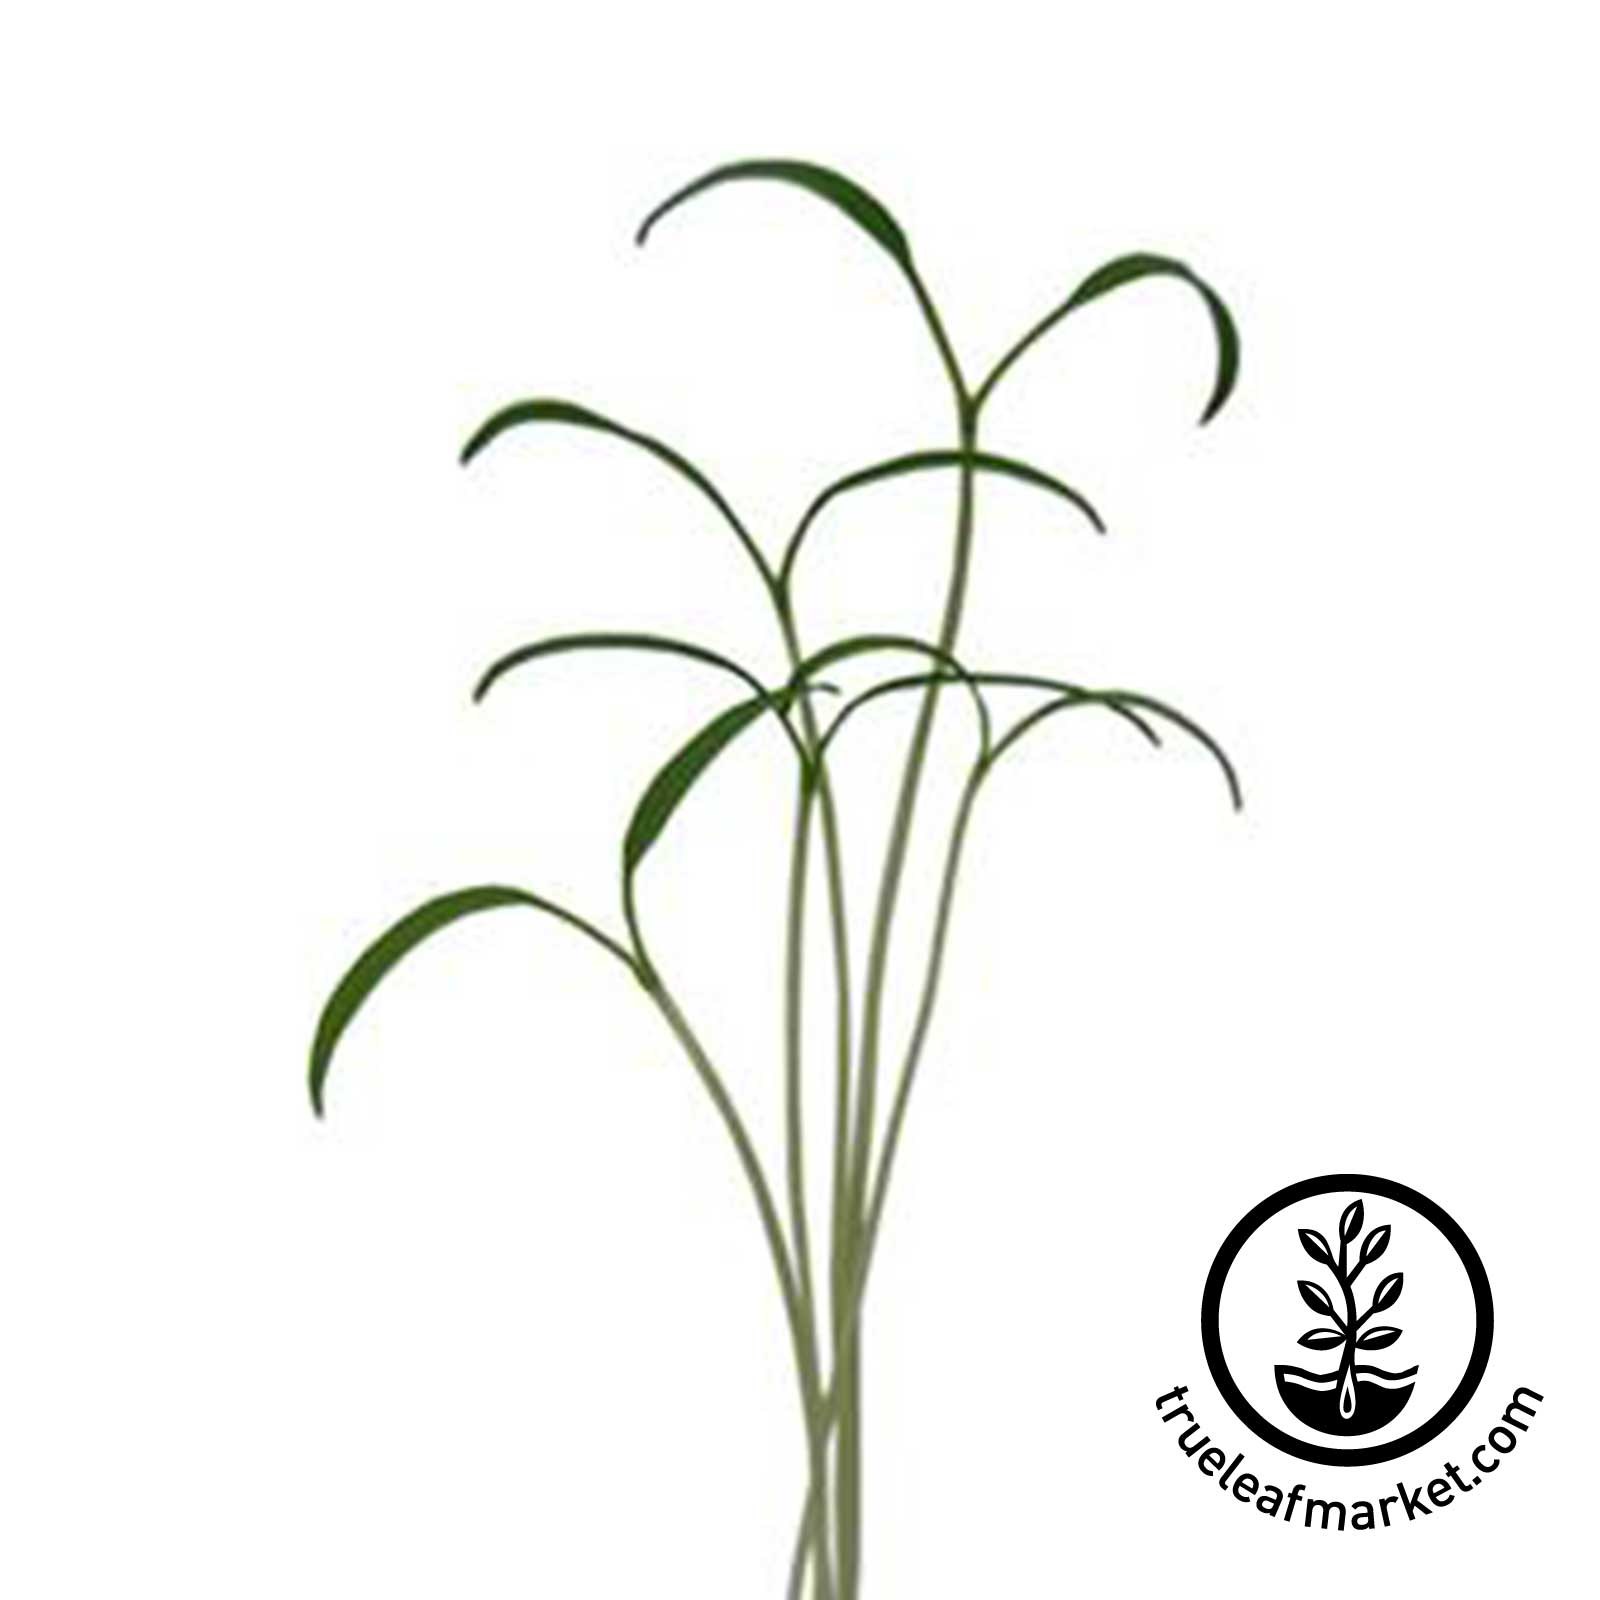 Chervil - Curled Microgreens Seeds - GMG-01165P